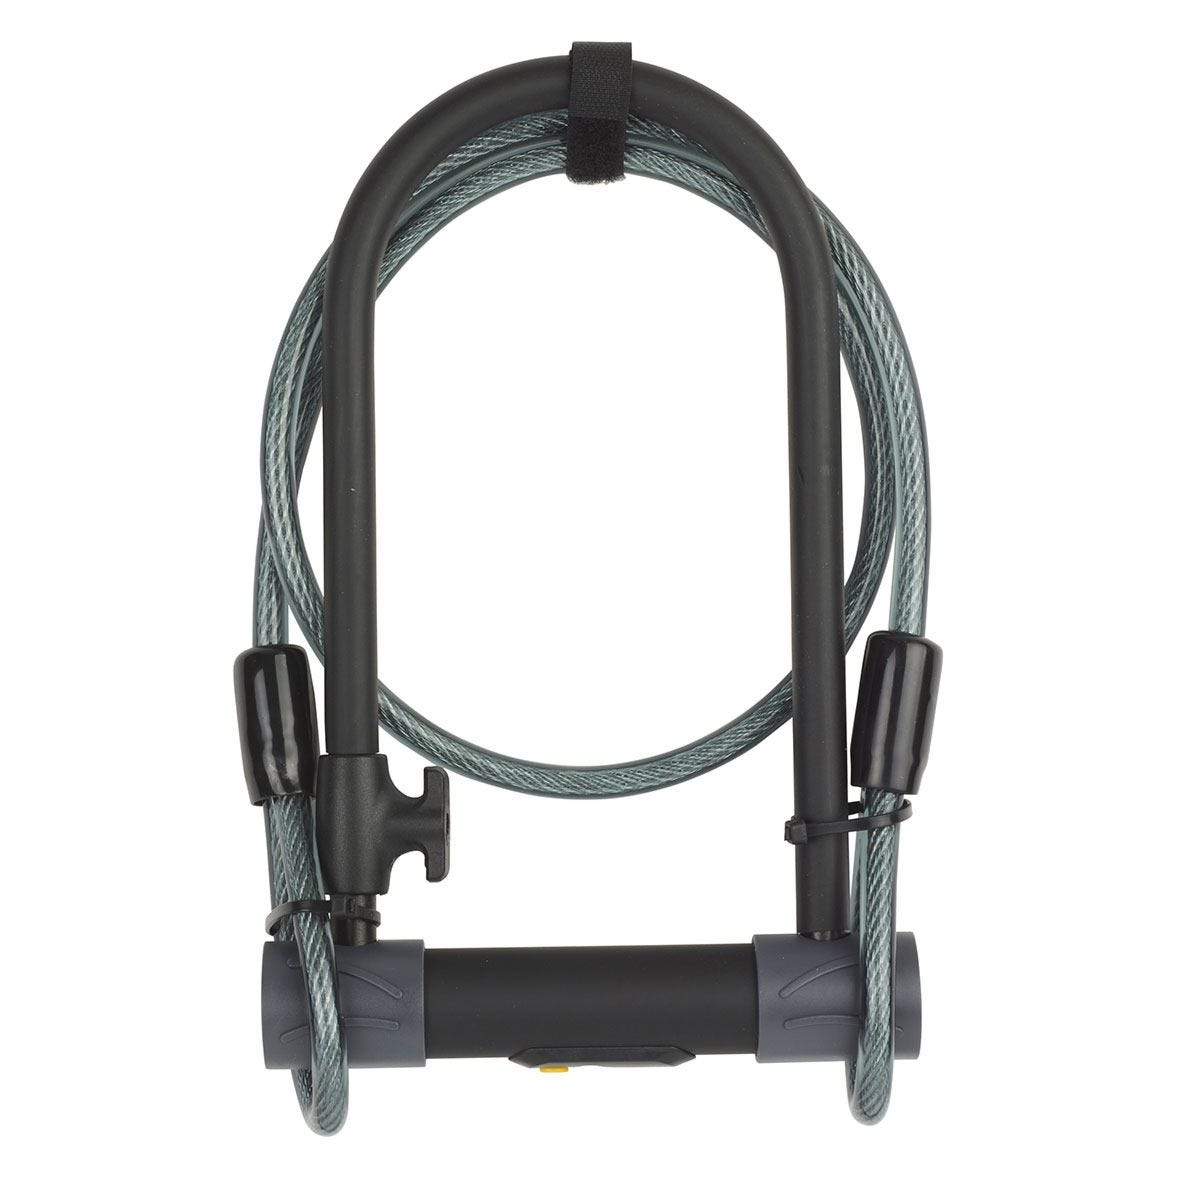 Yale High Security Bike Lock with Cable